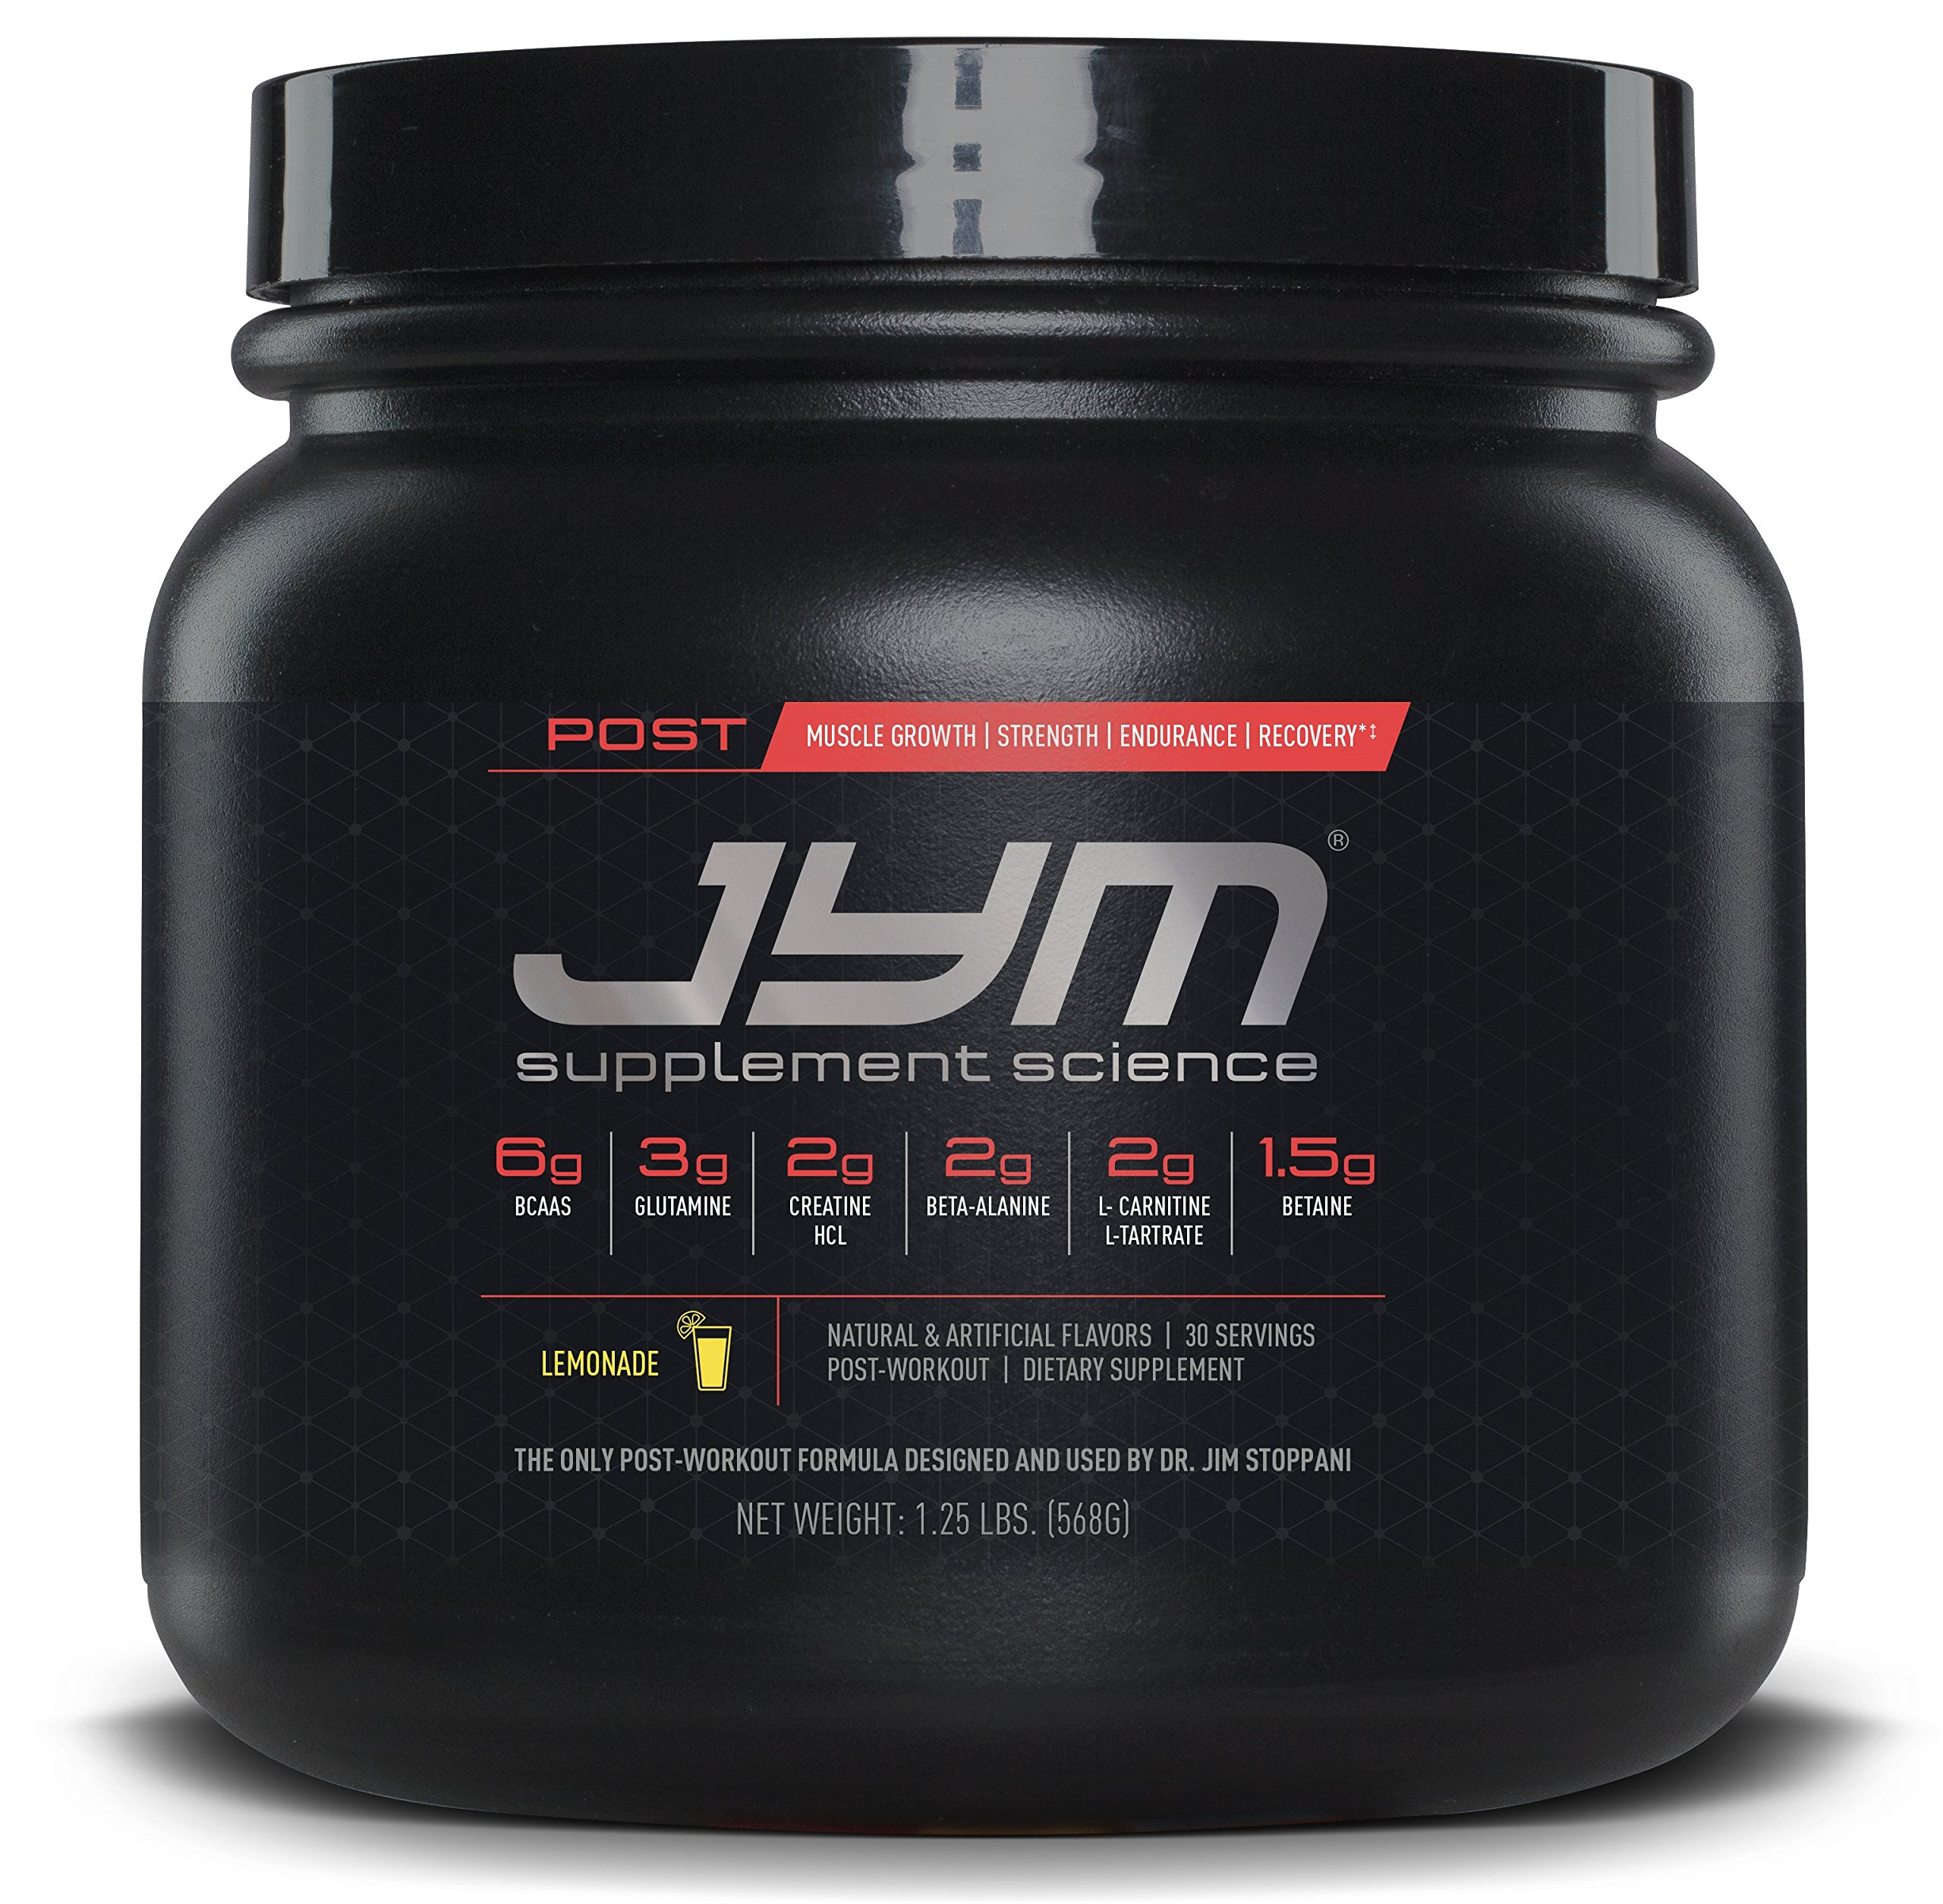 JYM Supplement Science, POST JYM Active Matrix, Post-Workout with BCAA's, Glutamine, Creatine HCL, Beta-Alanine, L-Carnitine L-Tartrate, Betaine, Taurine, and more, Lemonade, 30 Servings